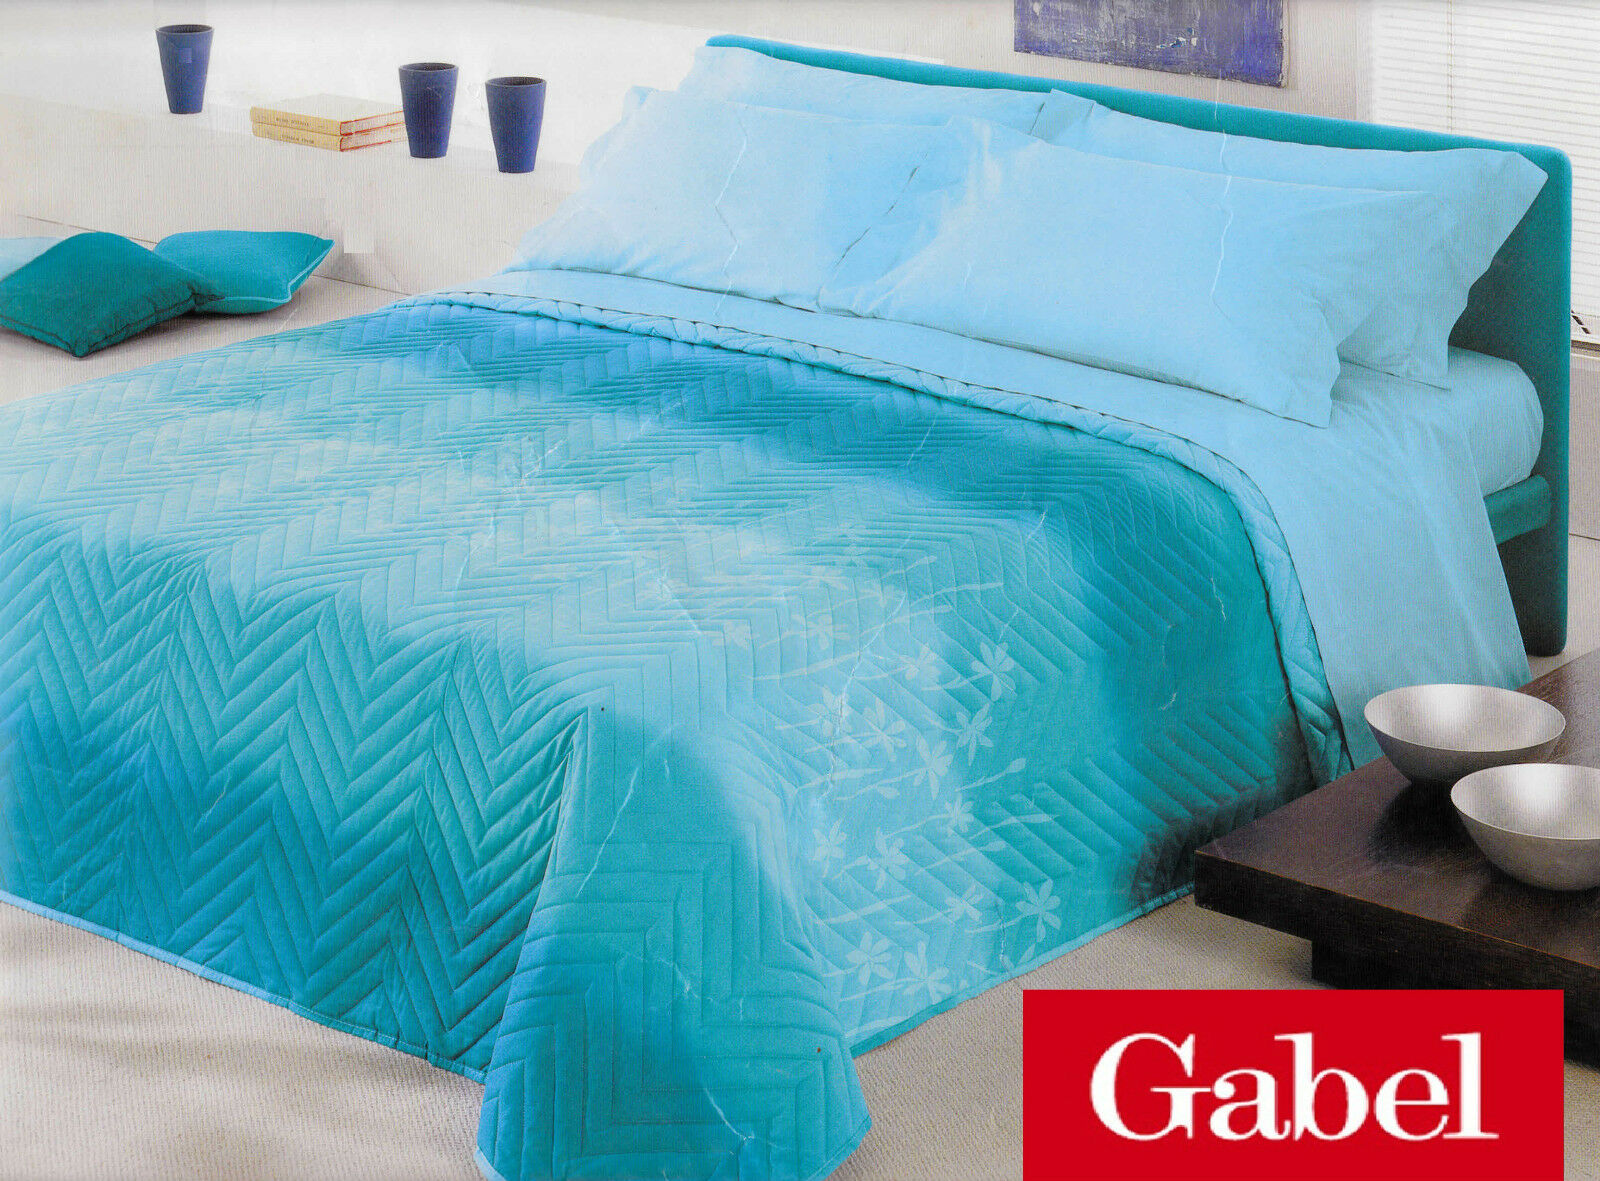 Quilted bedspread - Quilt. GABEL SOFT - Single half. Green. Double-face